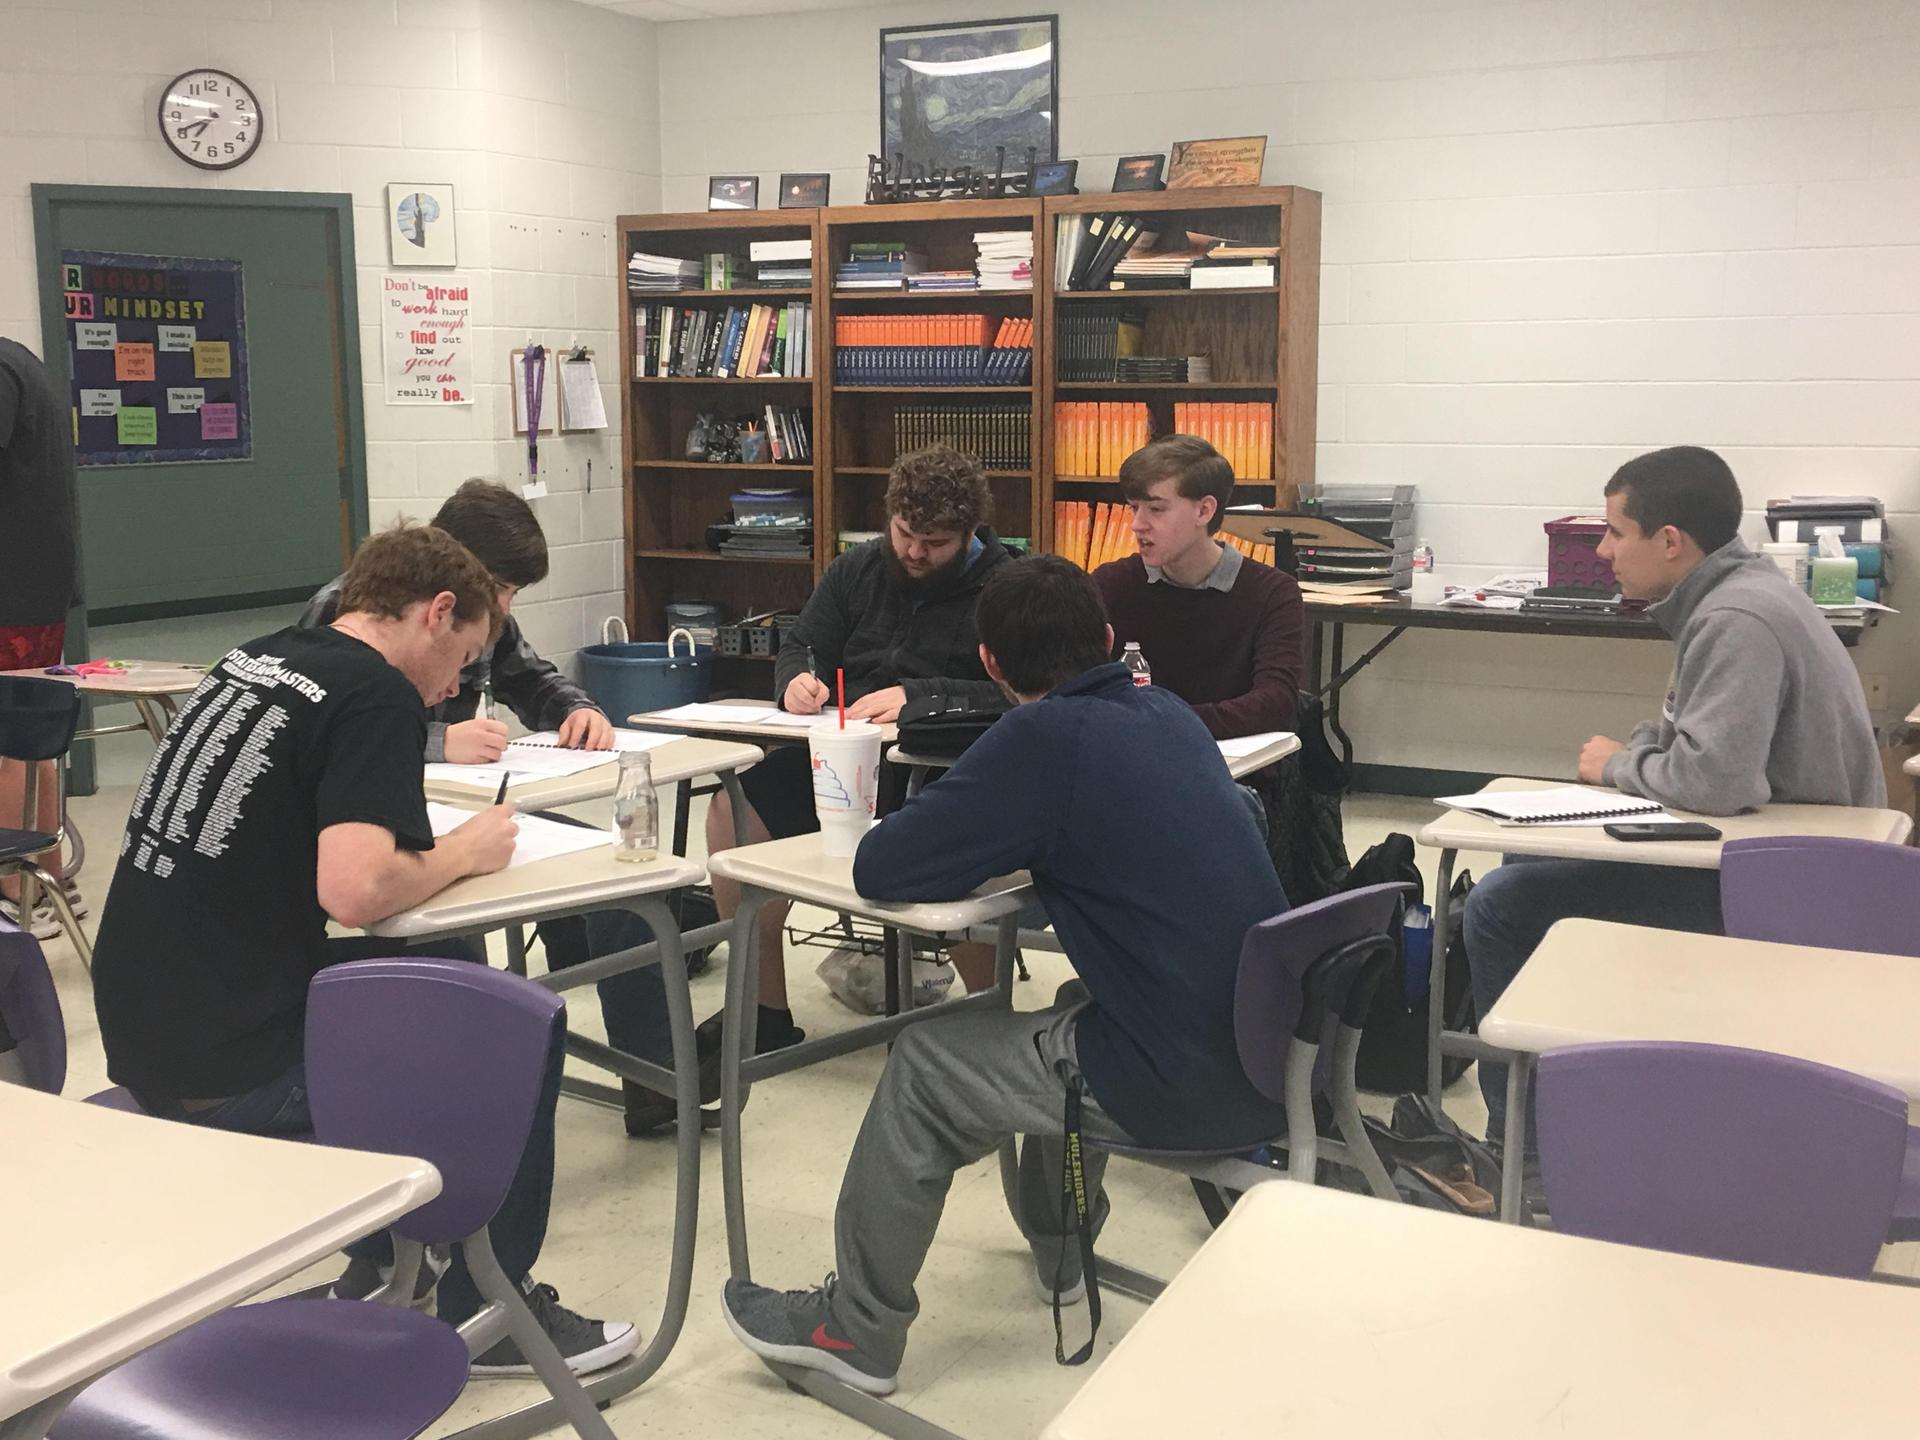 six students sitting in their desks in a circle having a discussion